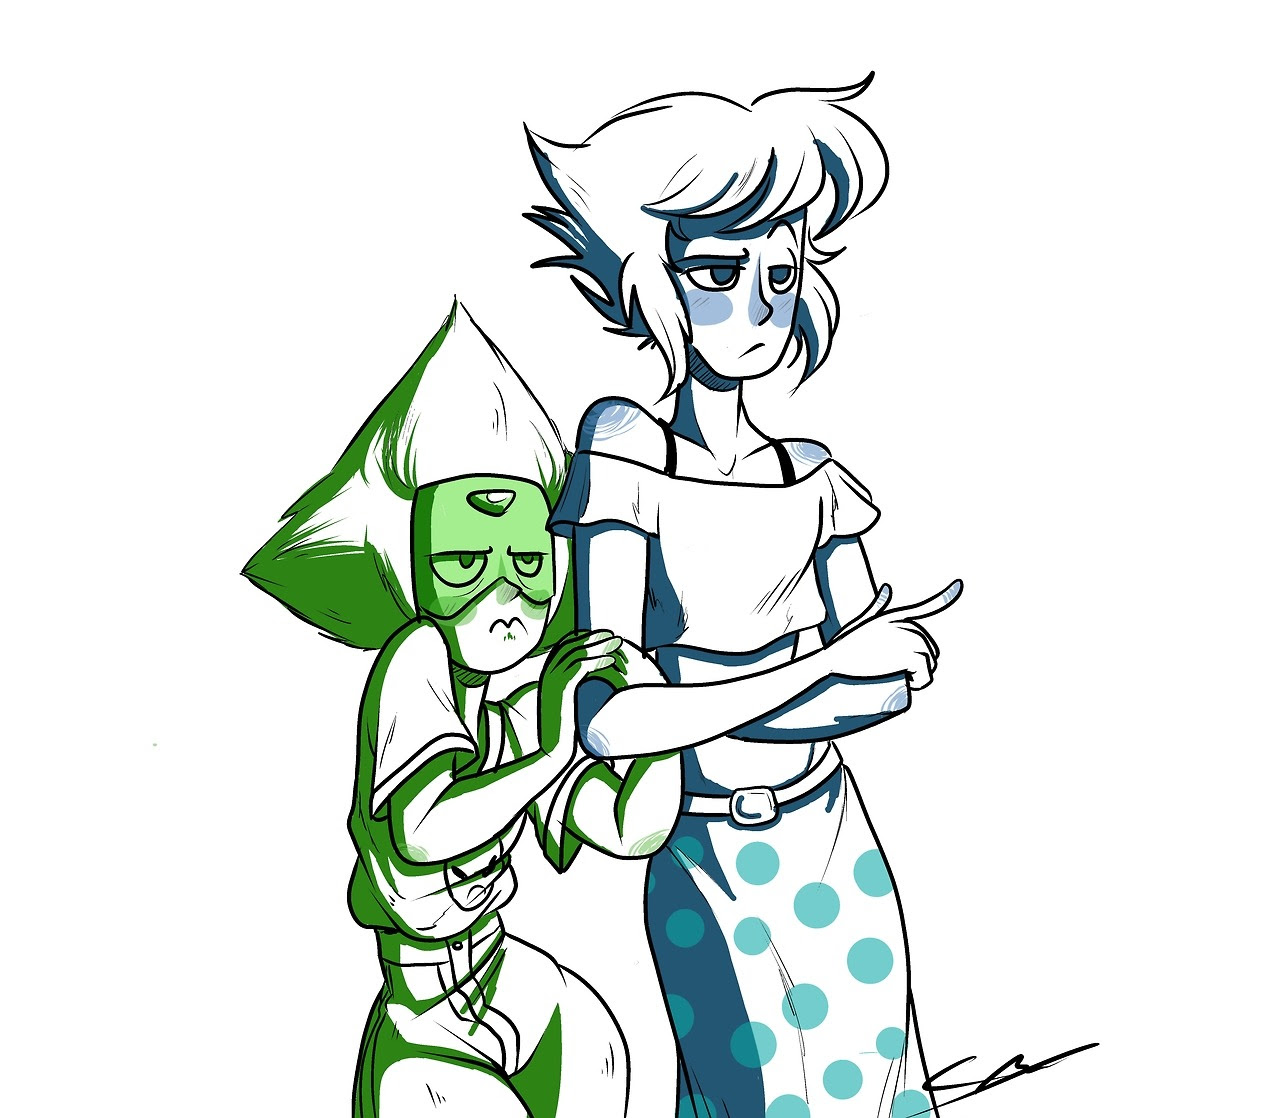 I love it when peri does the little thing where she just like, touches lapis' arm aaaaaaaaa